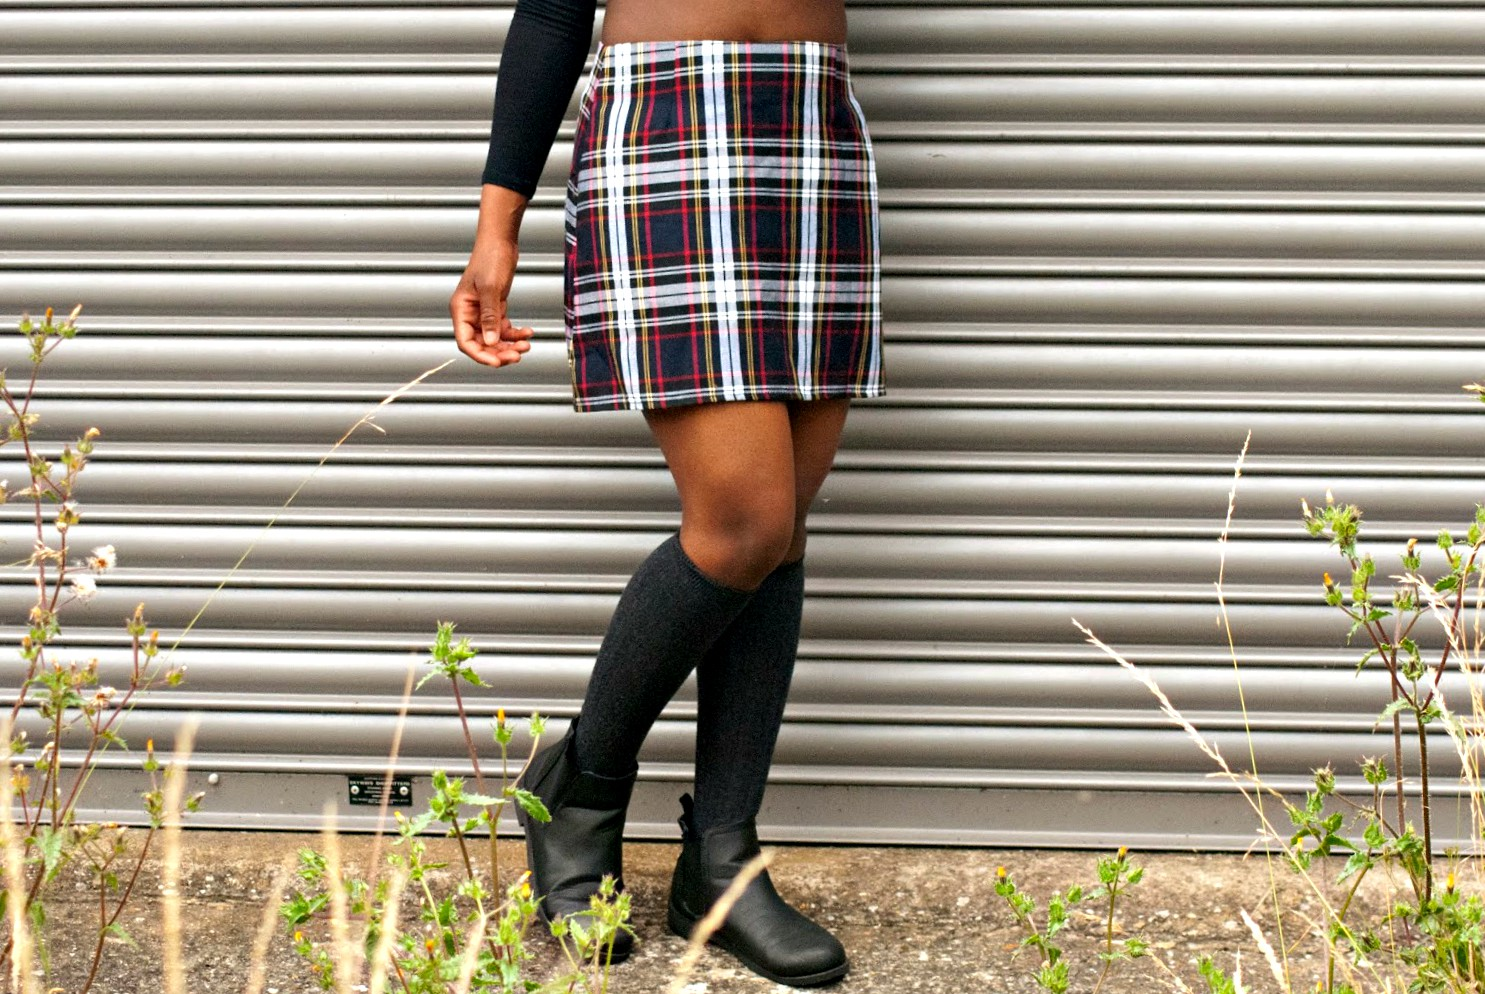 A Preppy 90's Boohoo Revival, Boohoo Skirt, Boohoo plaid skirt, 90's style, 90's fashion, bucket hat, Missguided ribbed crop top, 100 Ways to 30 UK fashion & lifestyle blog, fashion blogger, street style